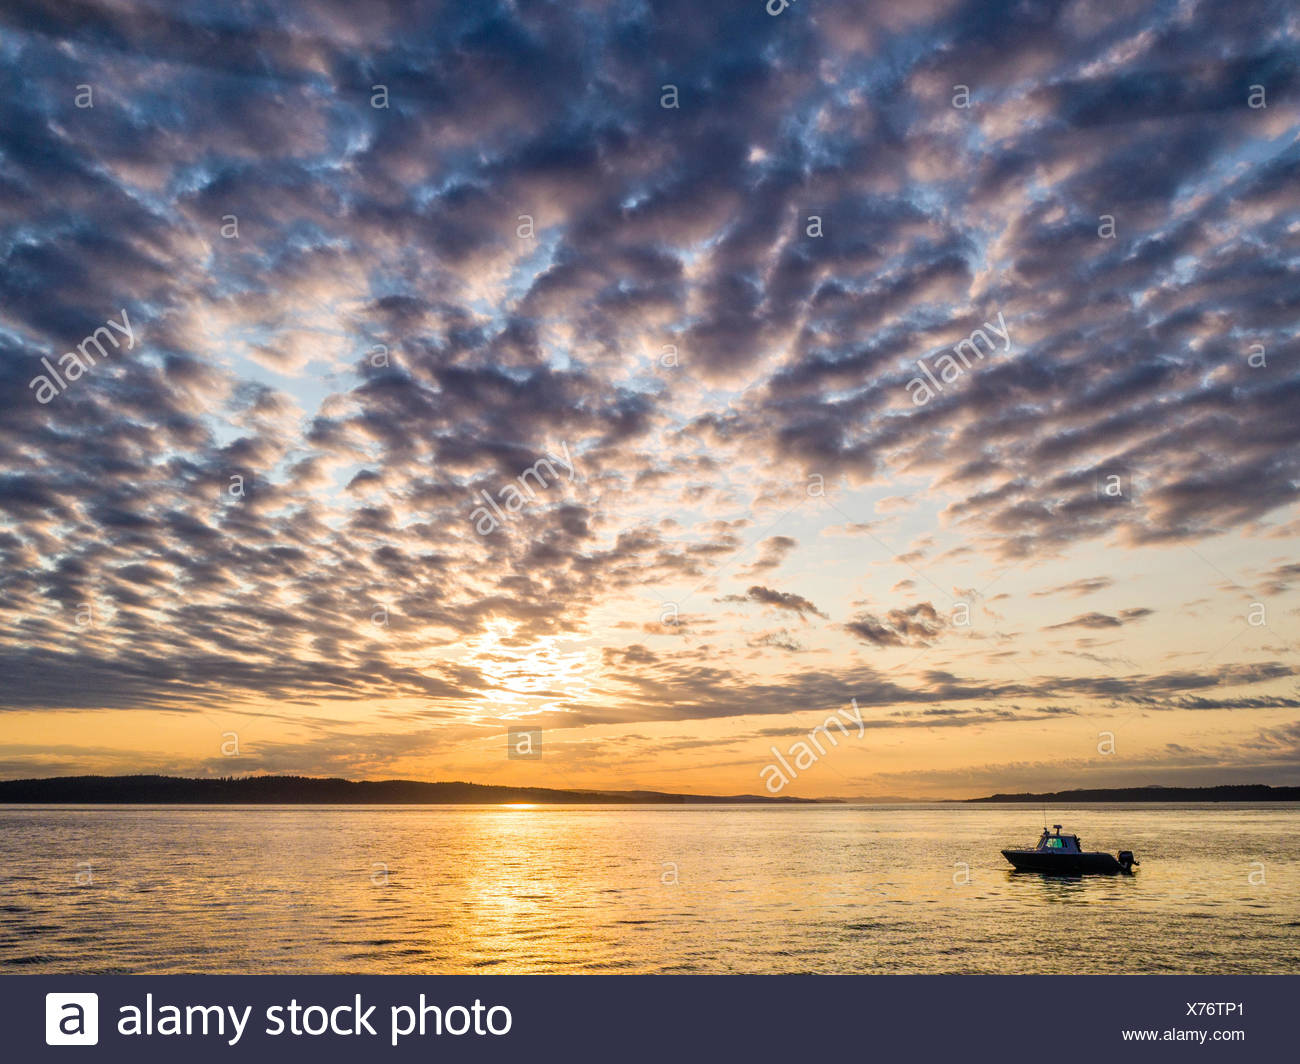 The 'Ambient Light' tour boat (Vancouver Island Photo Tours) during the sunset tour in Weynton Passage off Northern Vancouver Island, British Columbia, Canada - Stock Image